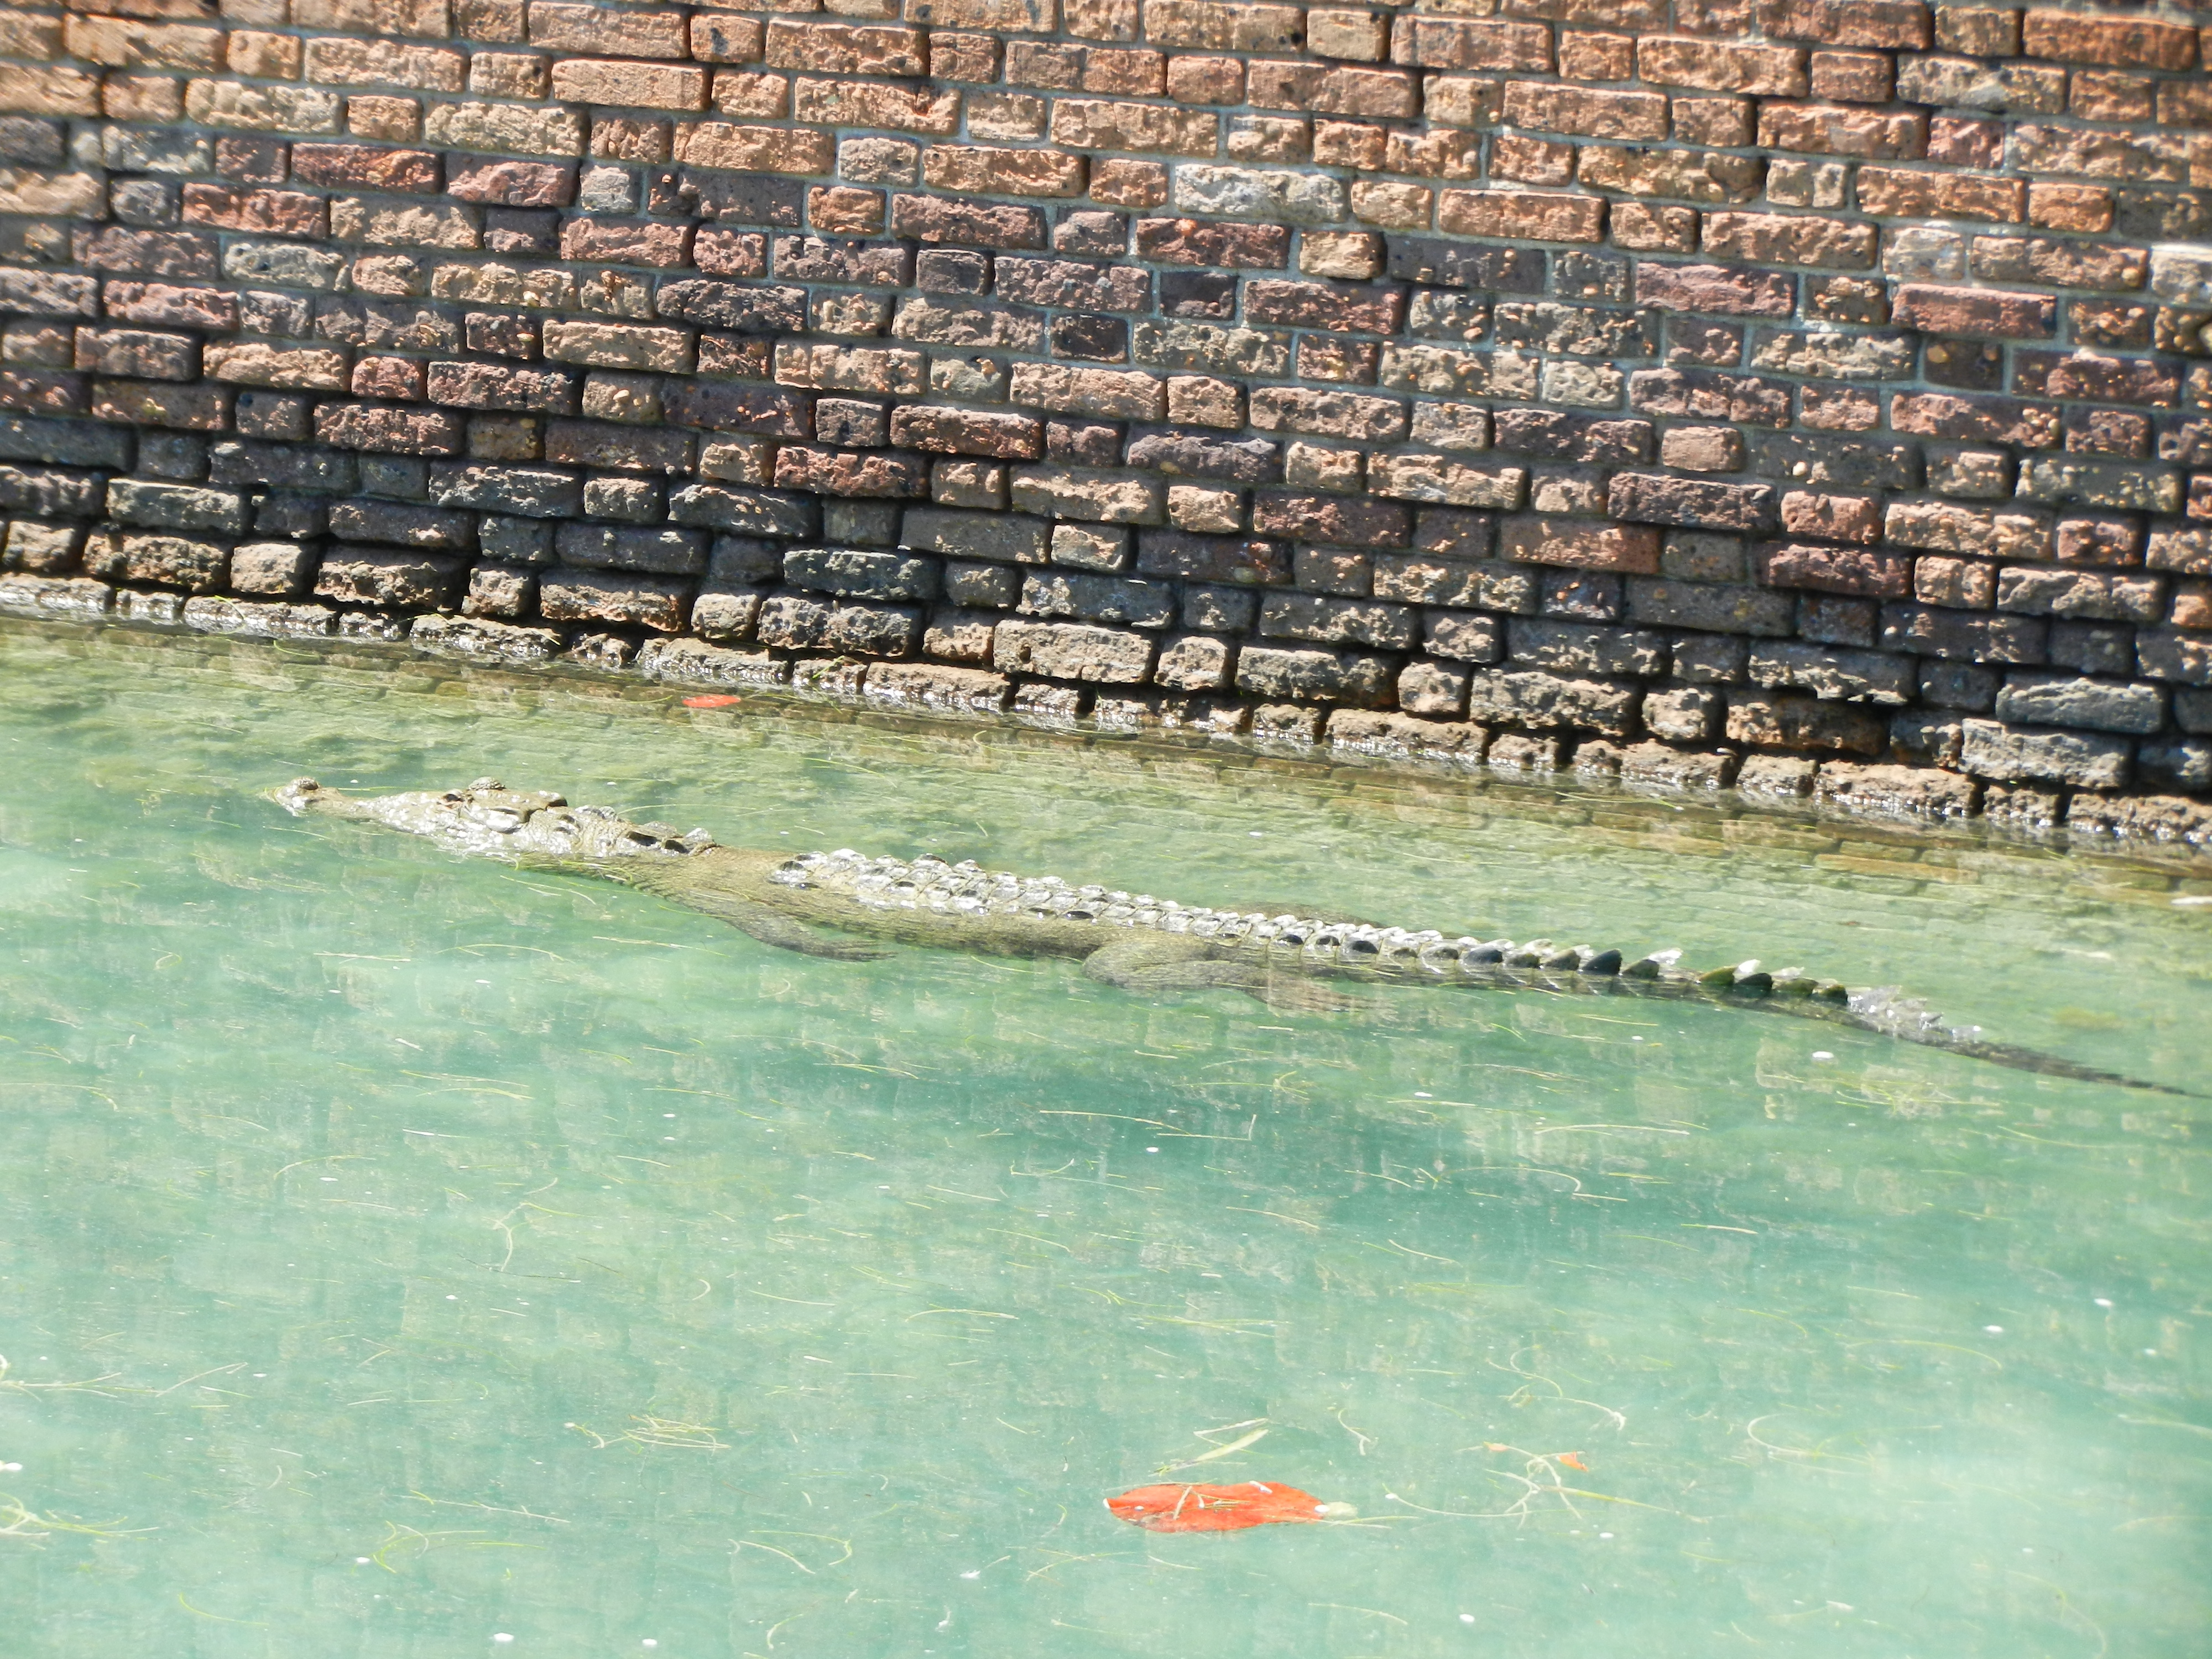 Salt water crocodile wading through the water in a moat.